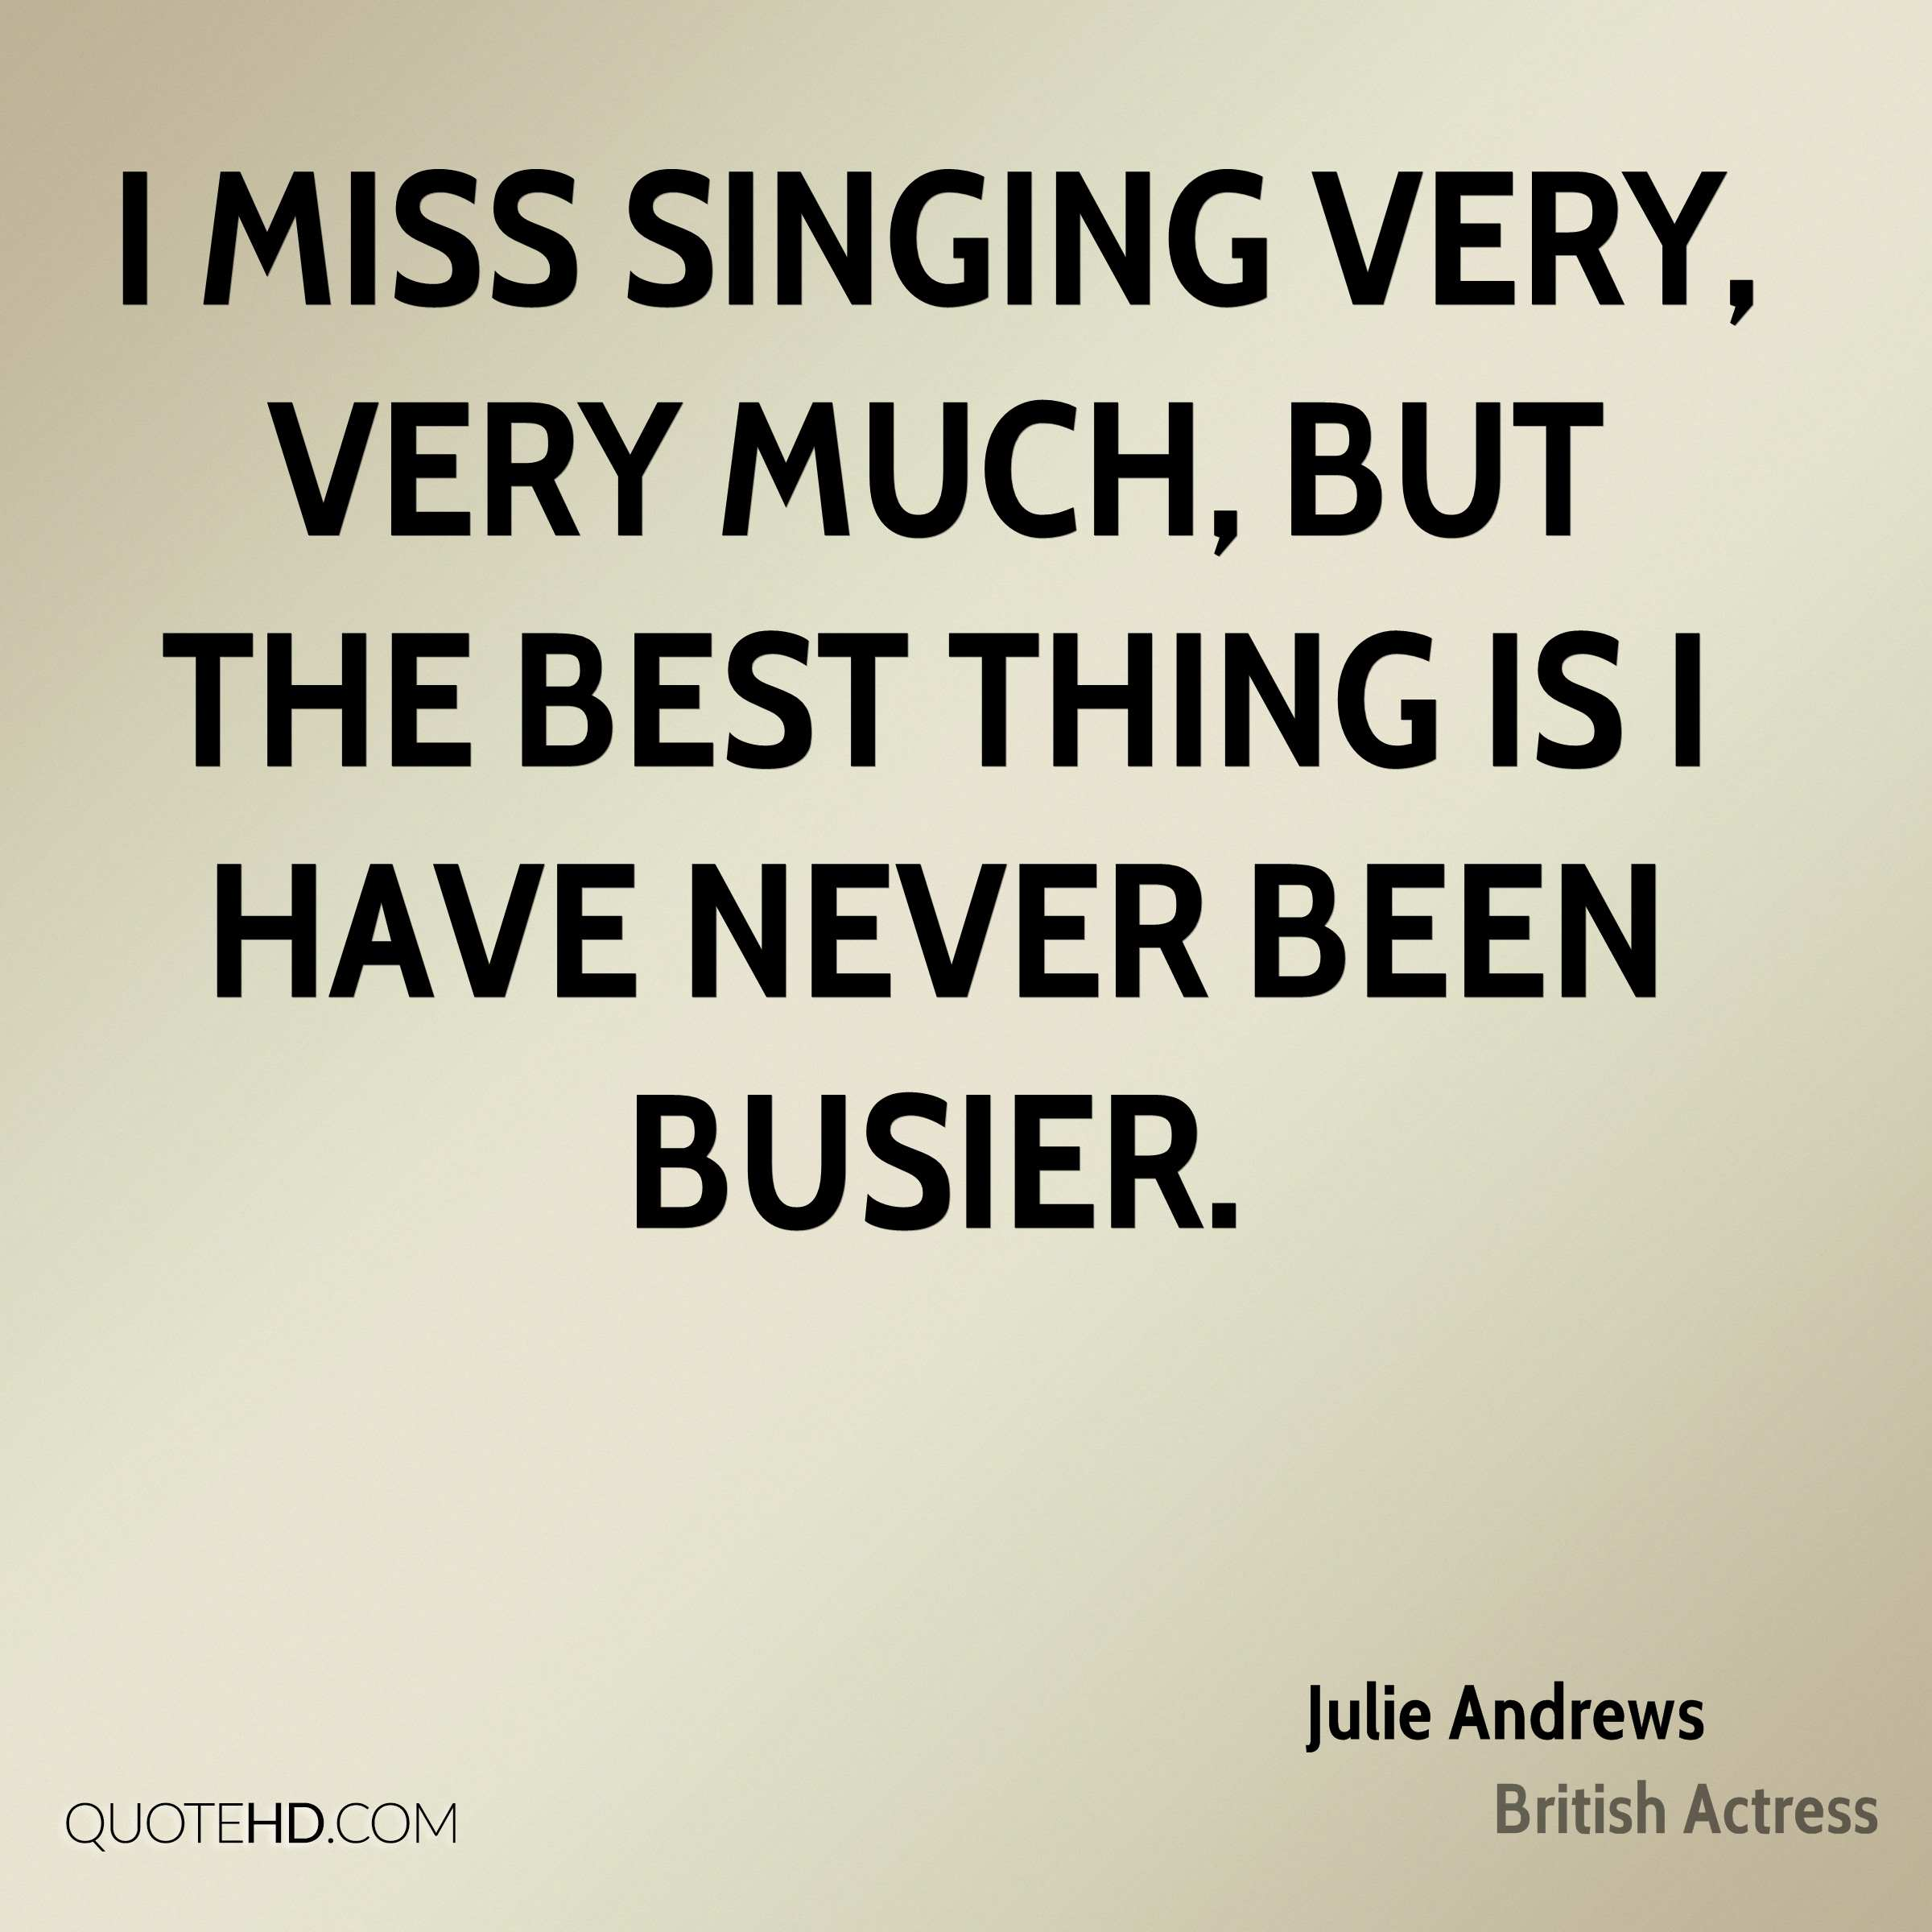 I miss singing very, very much, but the best thing is I have never been busier.